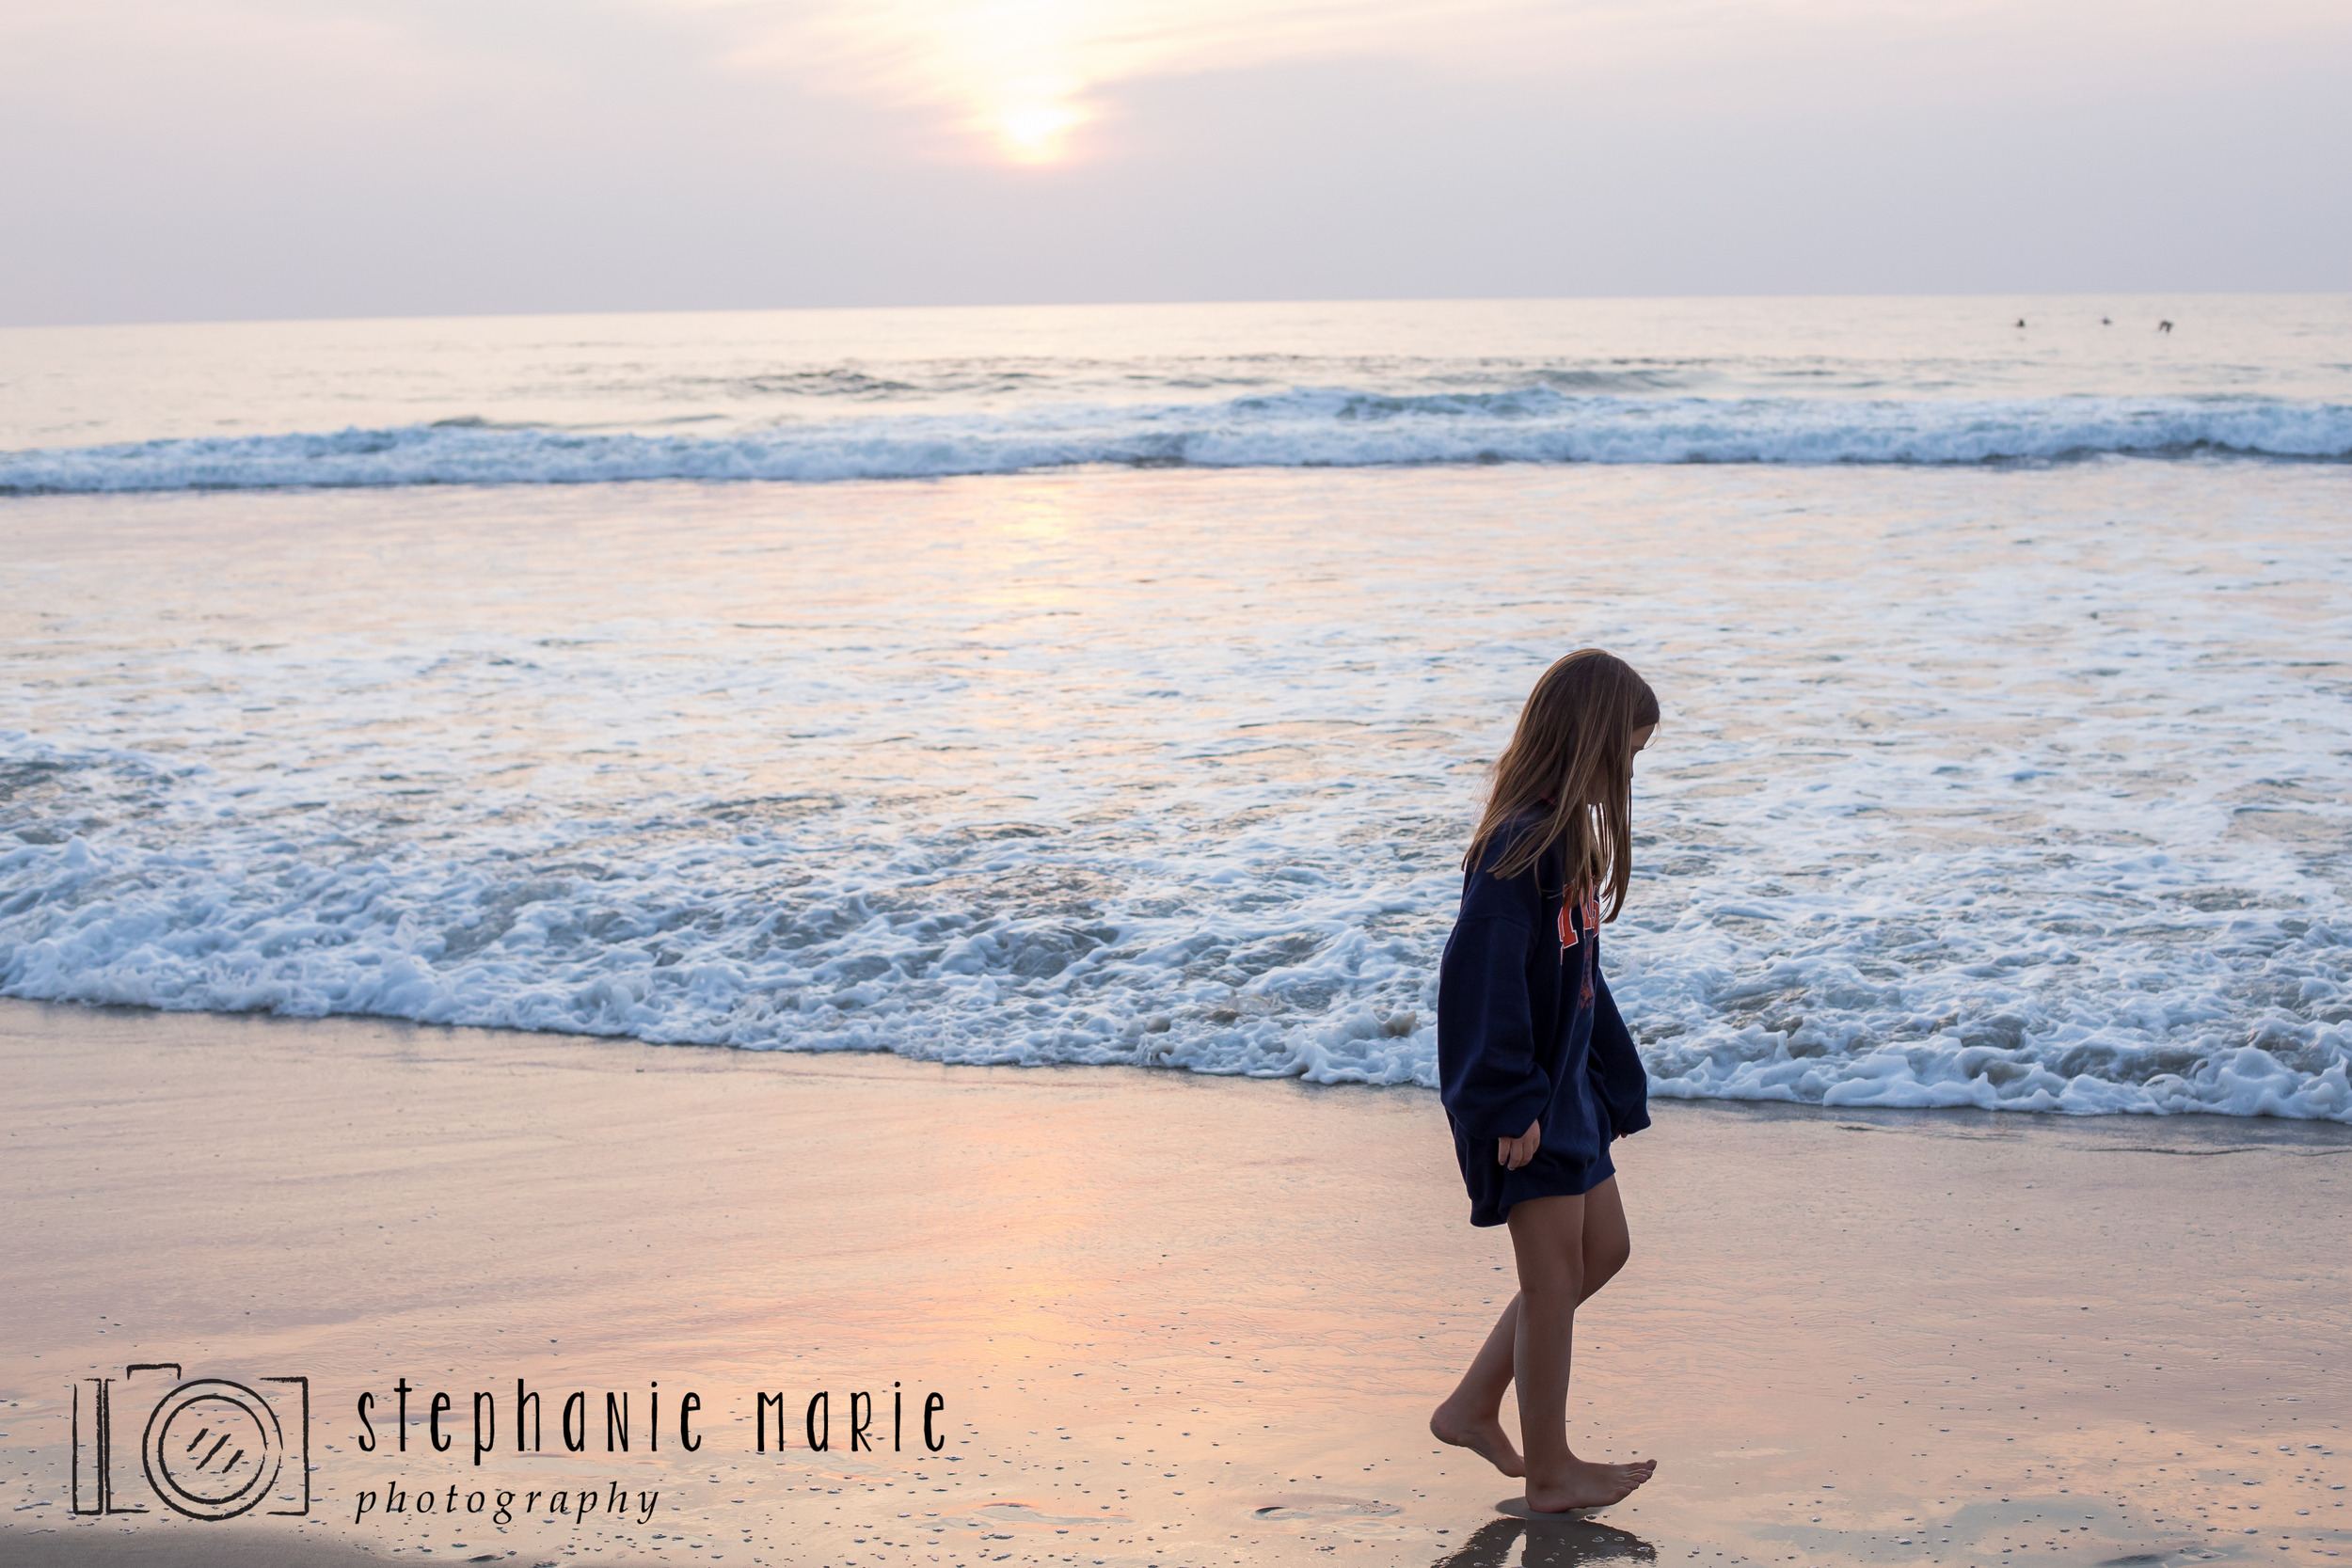 Stephanie Marie Photography, Greater Dayton Ohio Photographer, Personal Blog